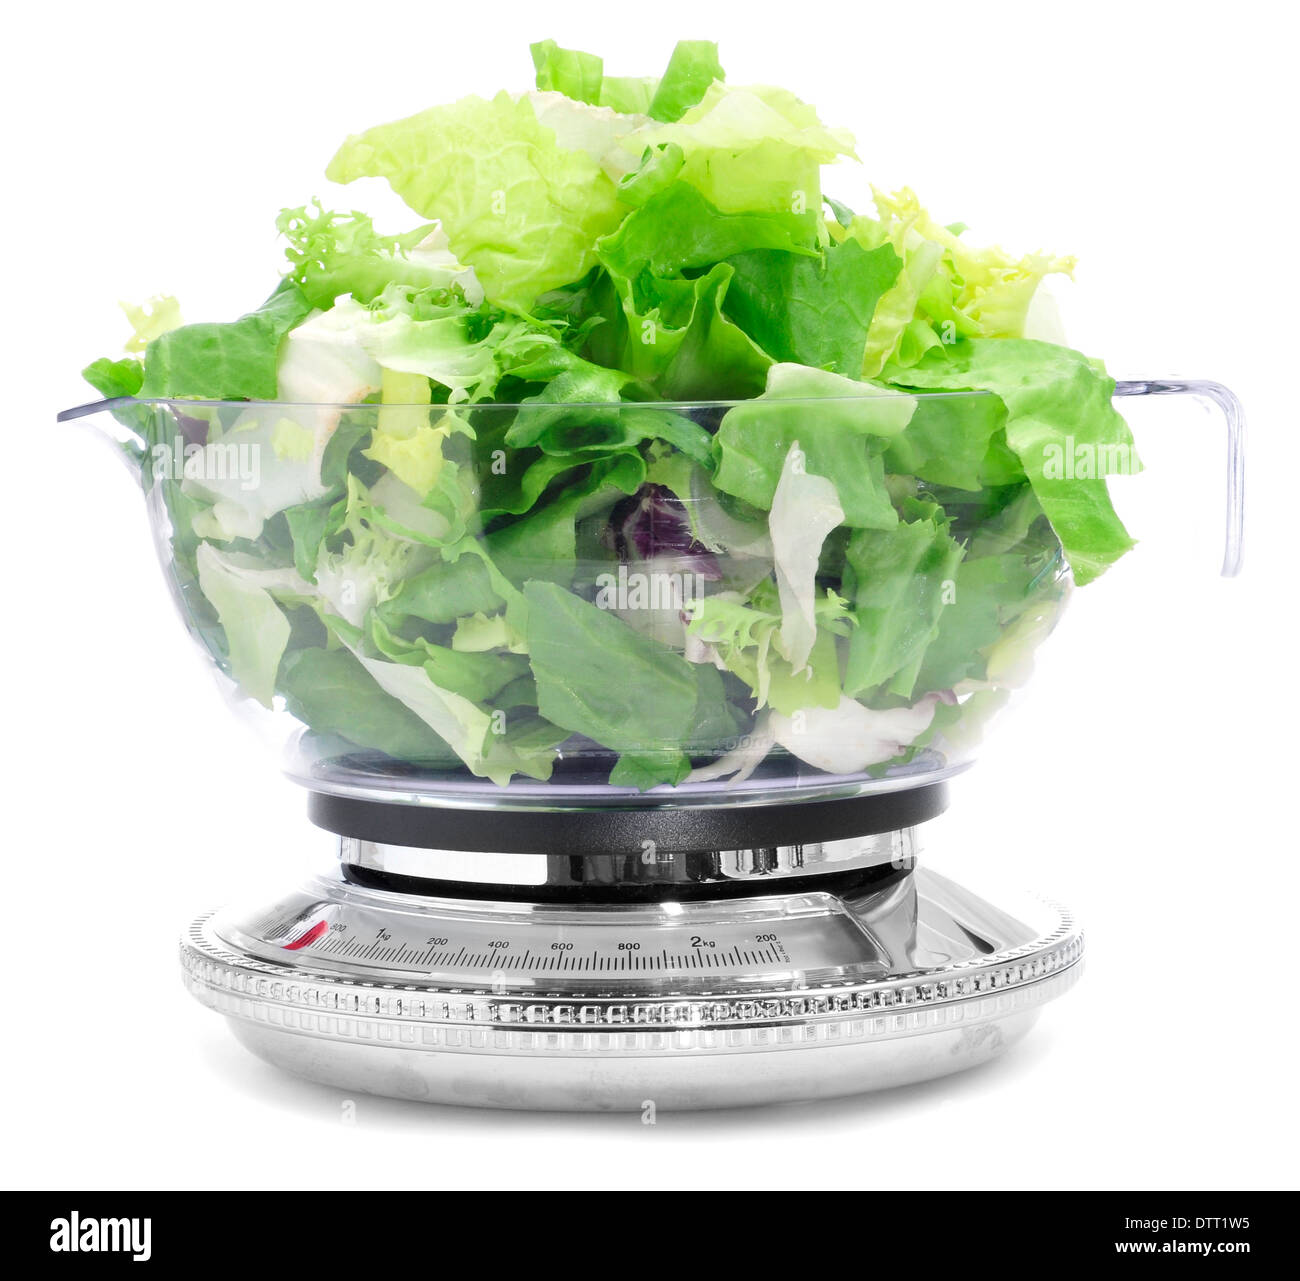 salad leaves in a scale, symbolizing the dieting concept or to stay fit - Stock Image